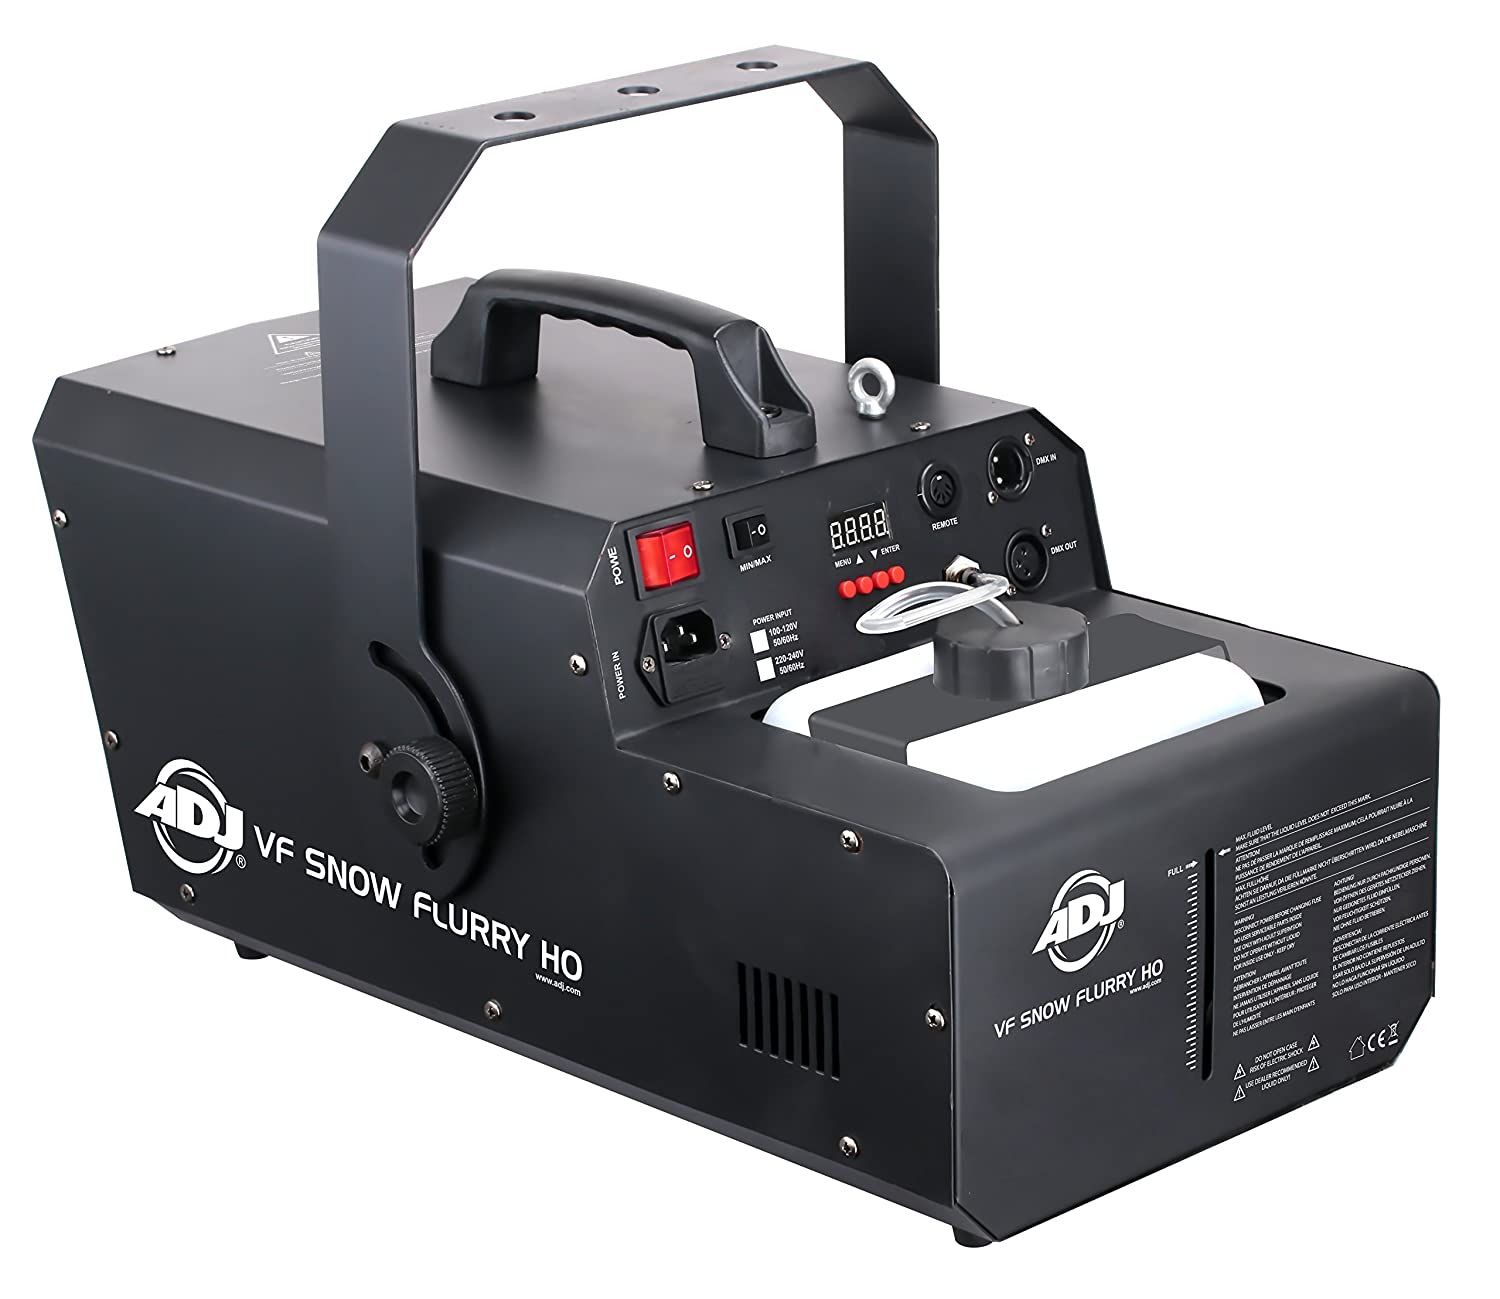 ADJ Products Fog Machine (VF Snow Flurry HO)